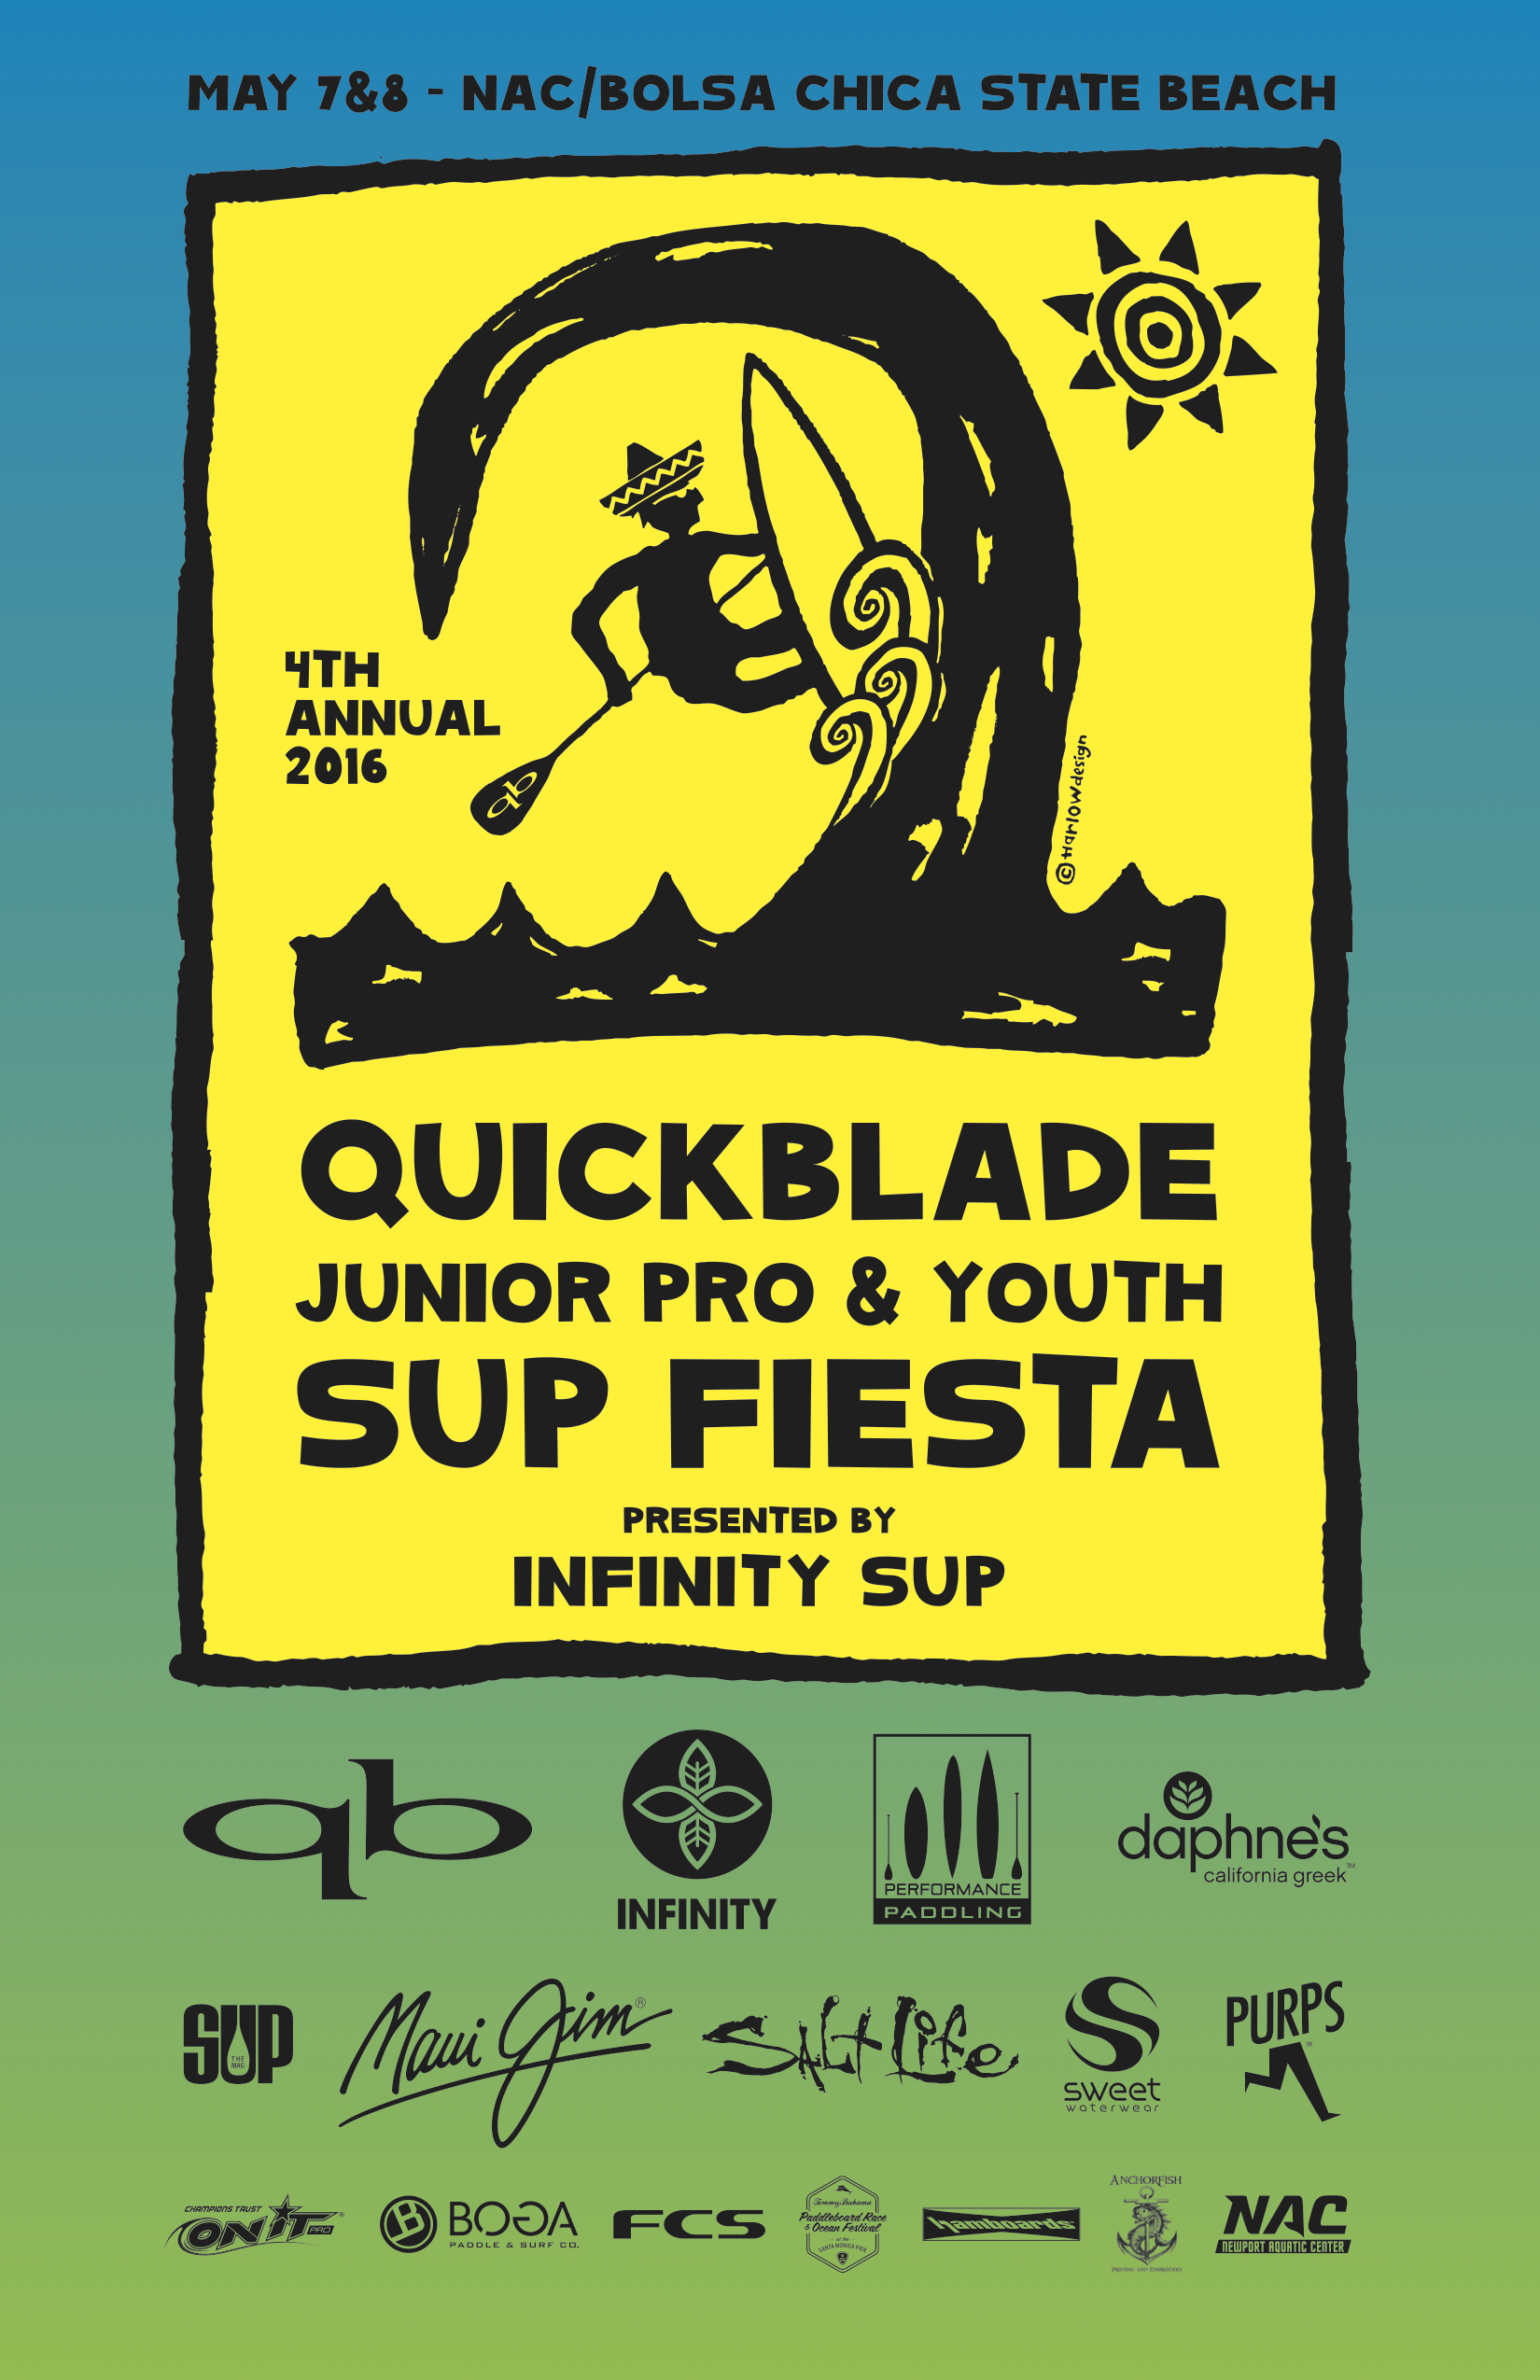 sup_fiesta_16_poster_11x17